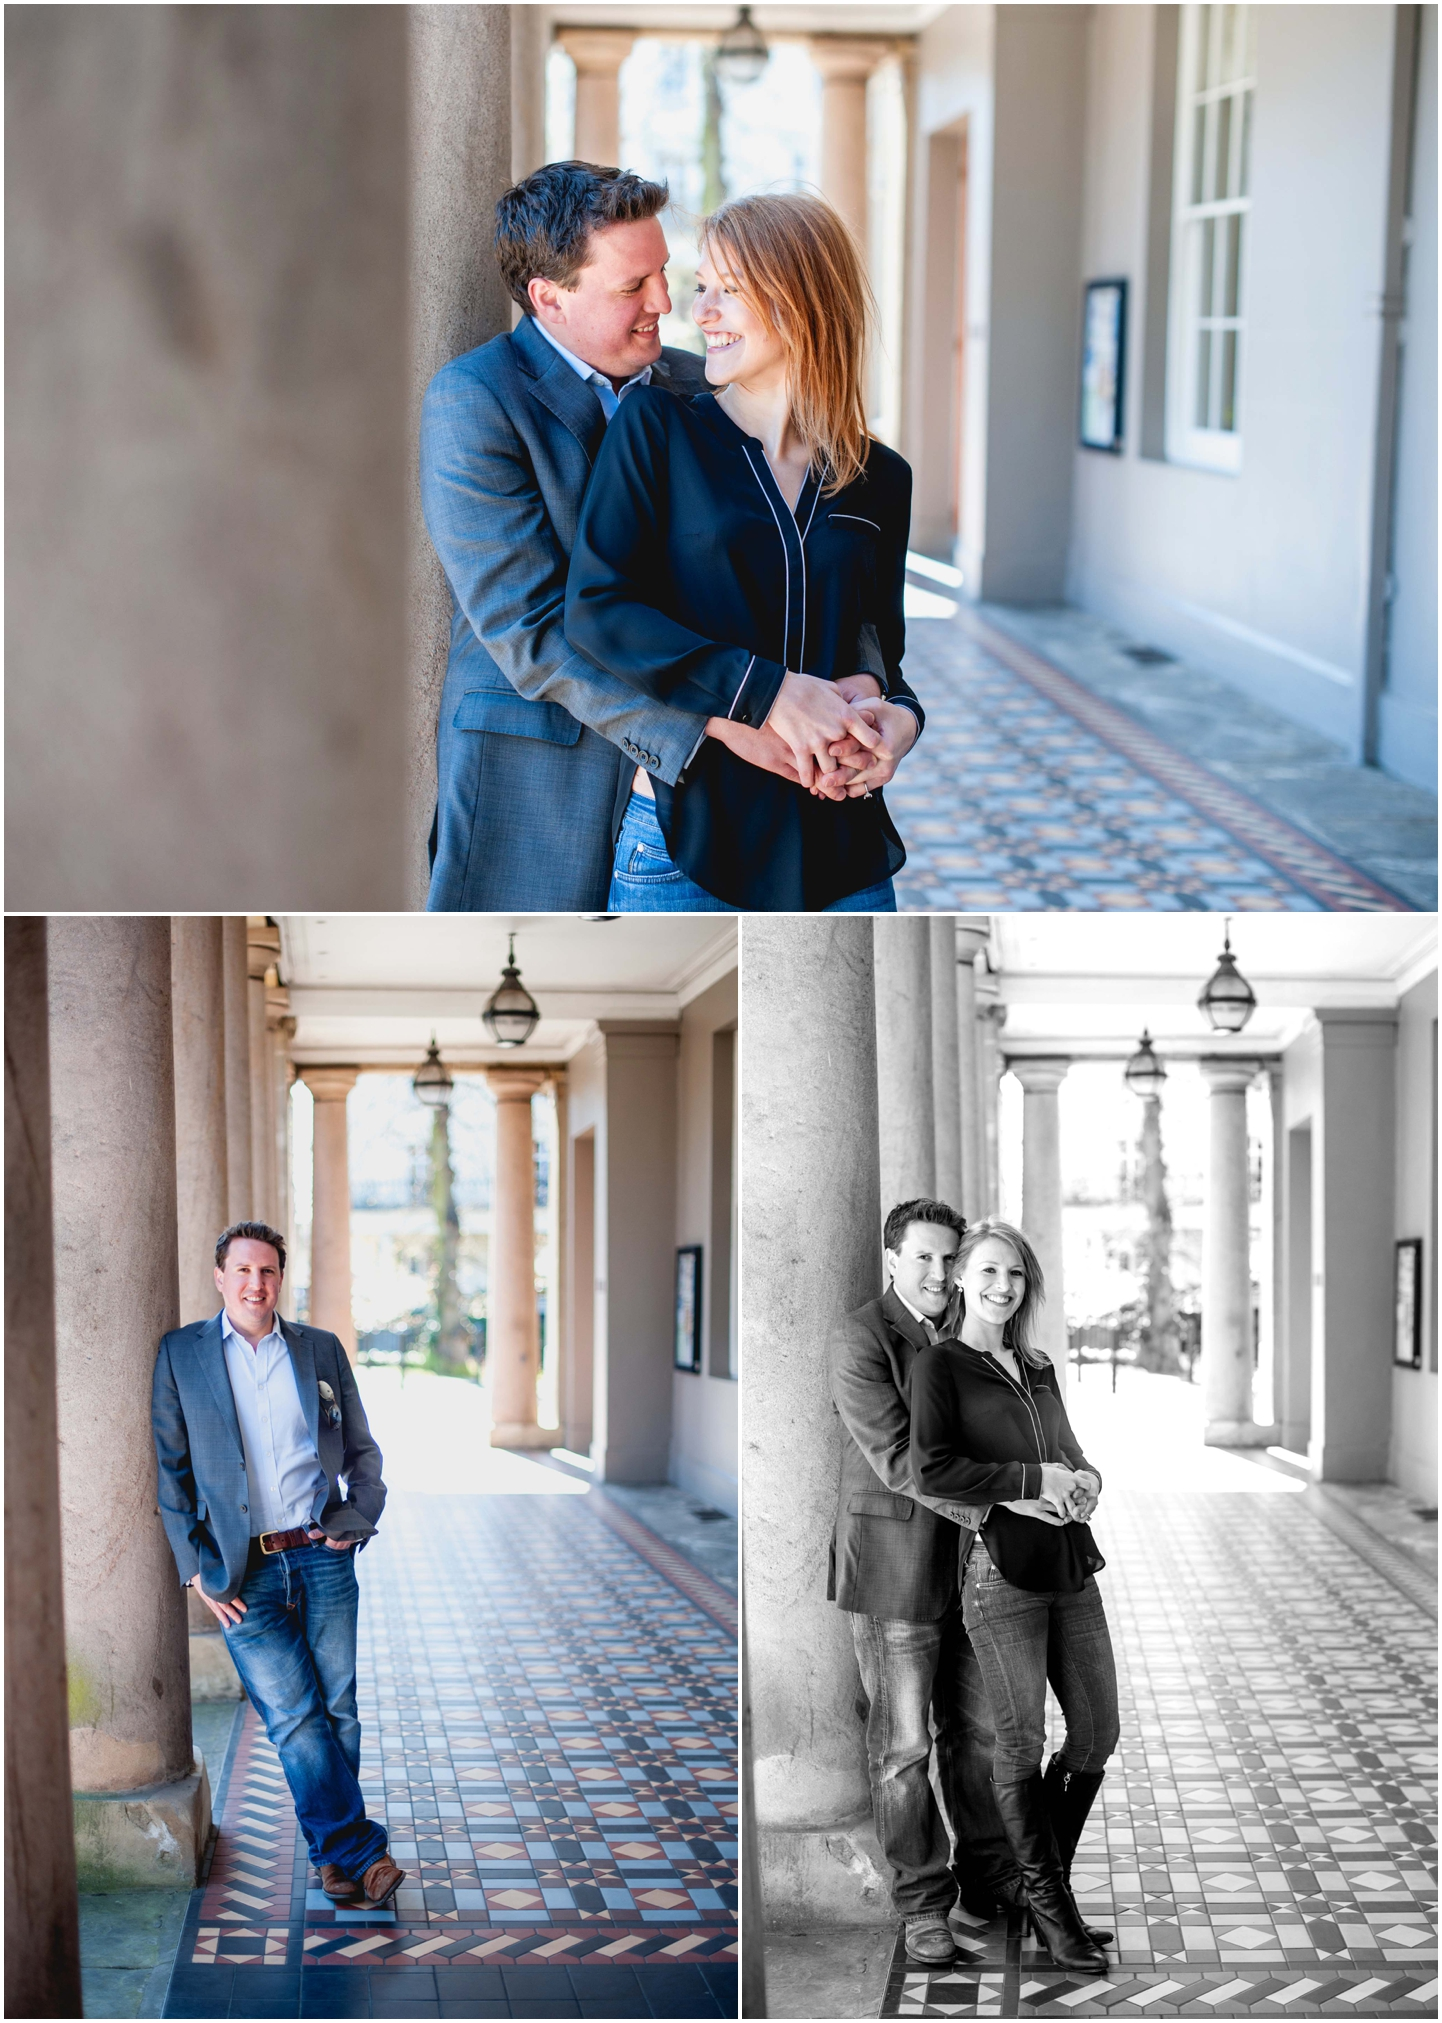 Susie and Ed's Leamington Spa Engagement Shoot by Lisa Carpenter Photography, West Midlands, Birmingham and Sutton Coldfield Wedding Photographer